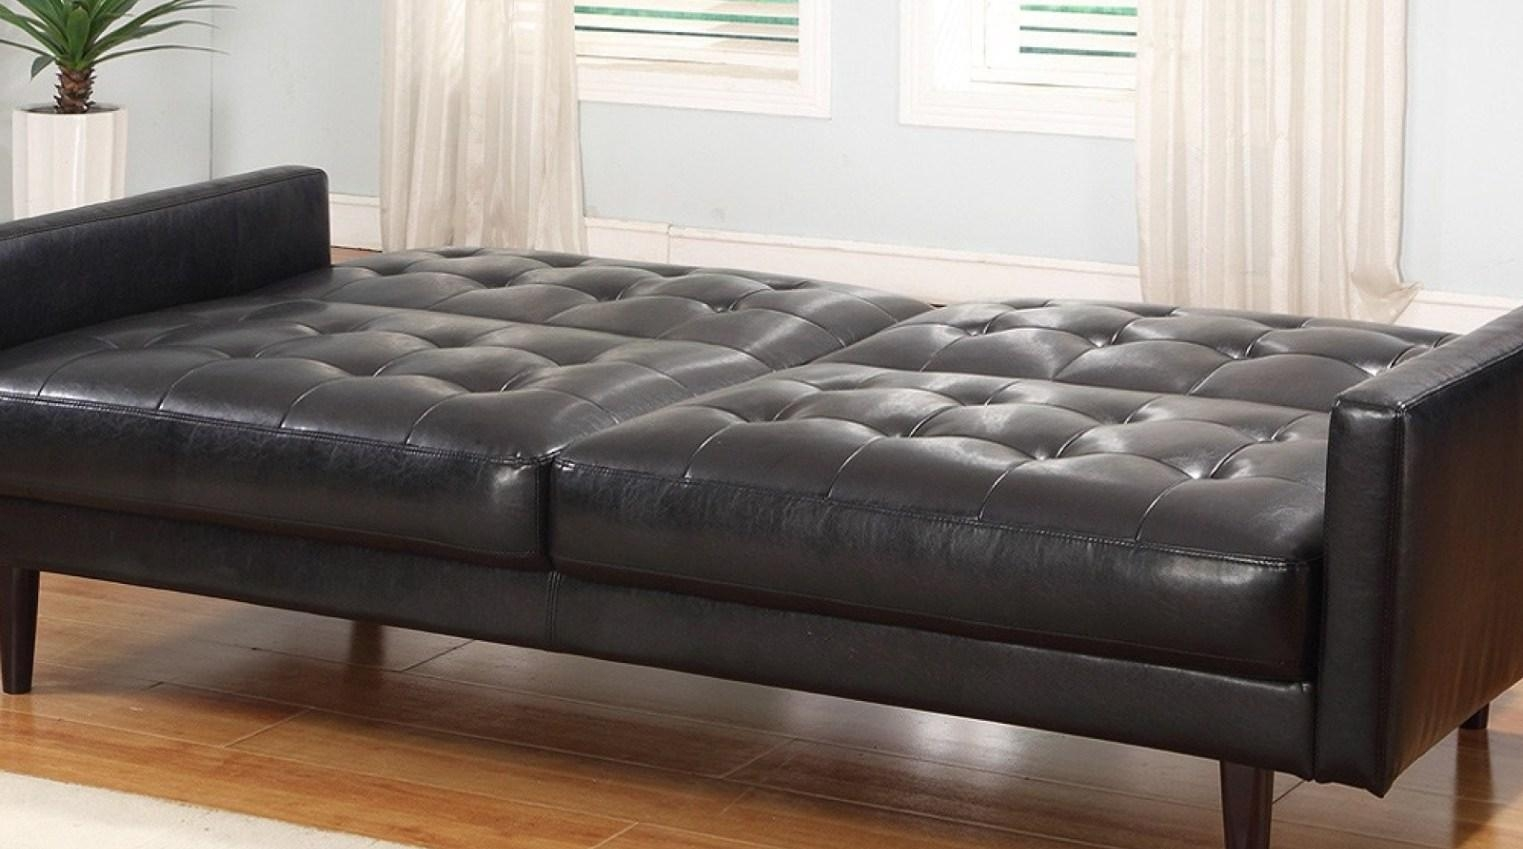 chesterfield sofa history julia cupholder convertible futon bed white 2018 latest classic english sofas ideas